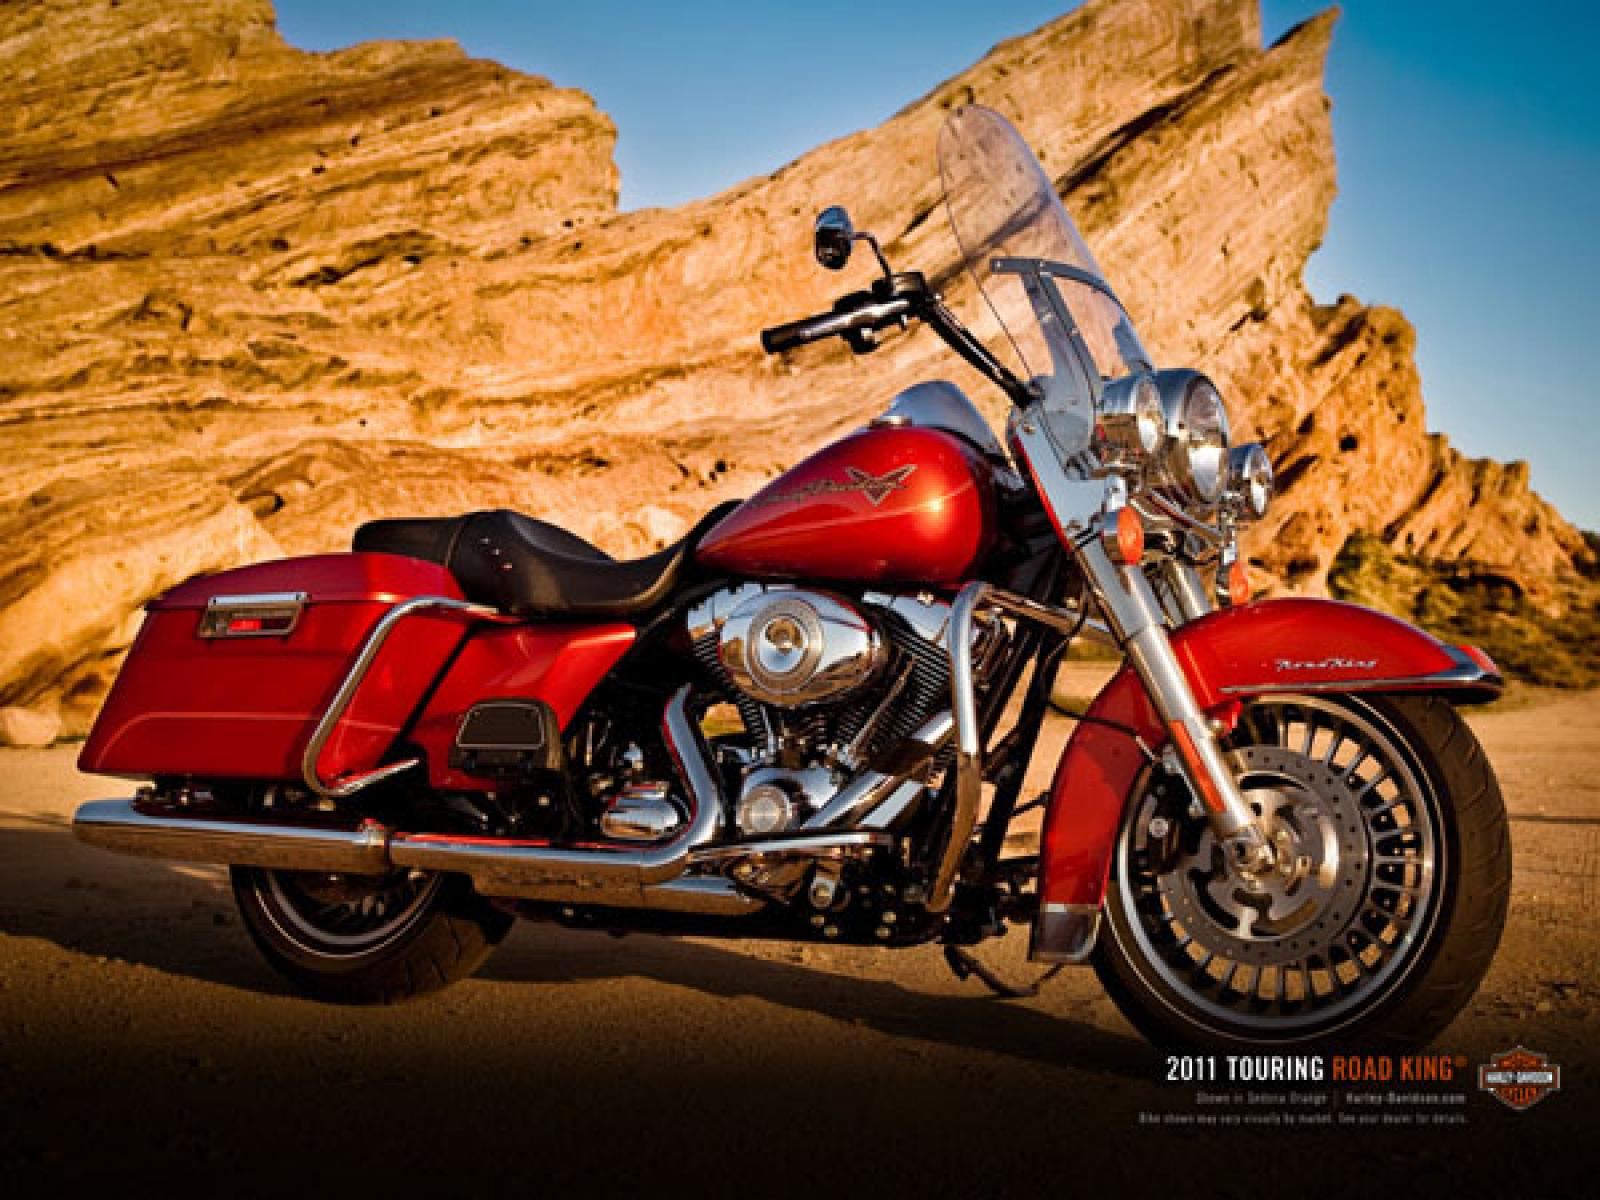 2014 Harley-Davidson Road King Fire - Rescue #9